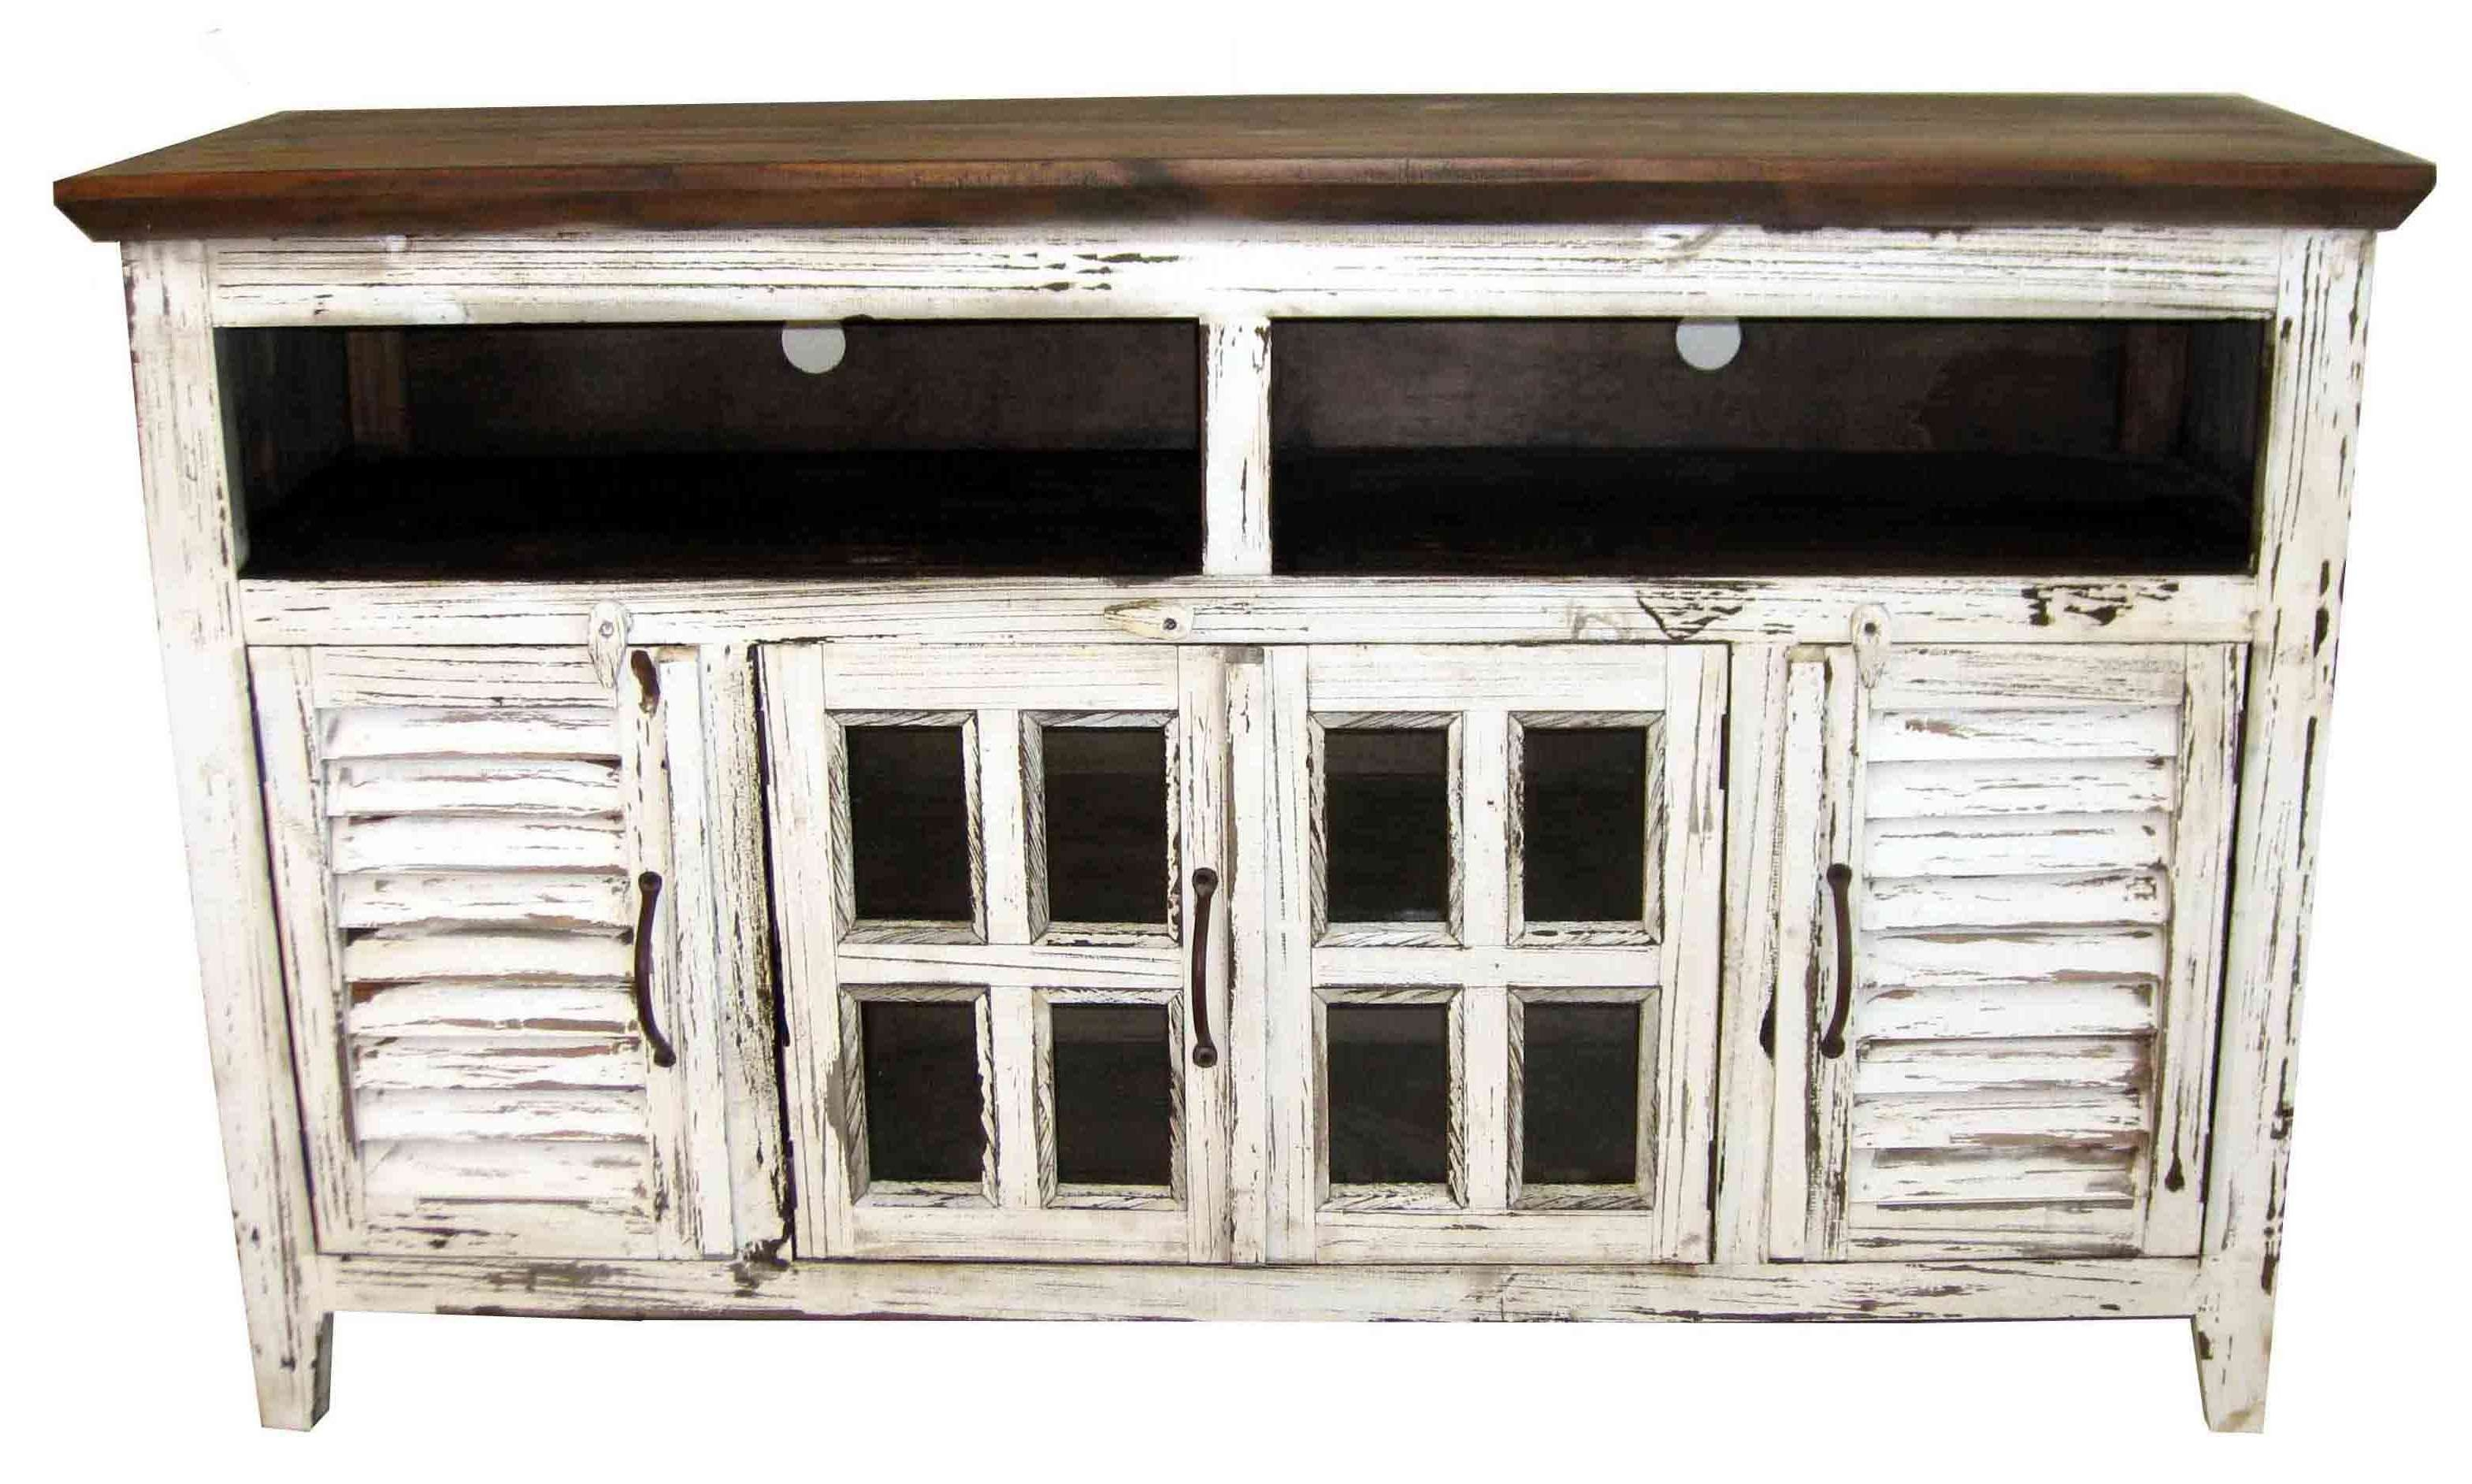 Rustic Tv Stands And Cabinets Tags : 37 Formidable Rustic Tv Stand In Rustic Furniture Tv Stands (View 15 of 20)